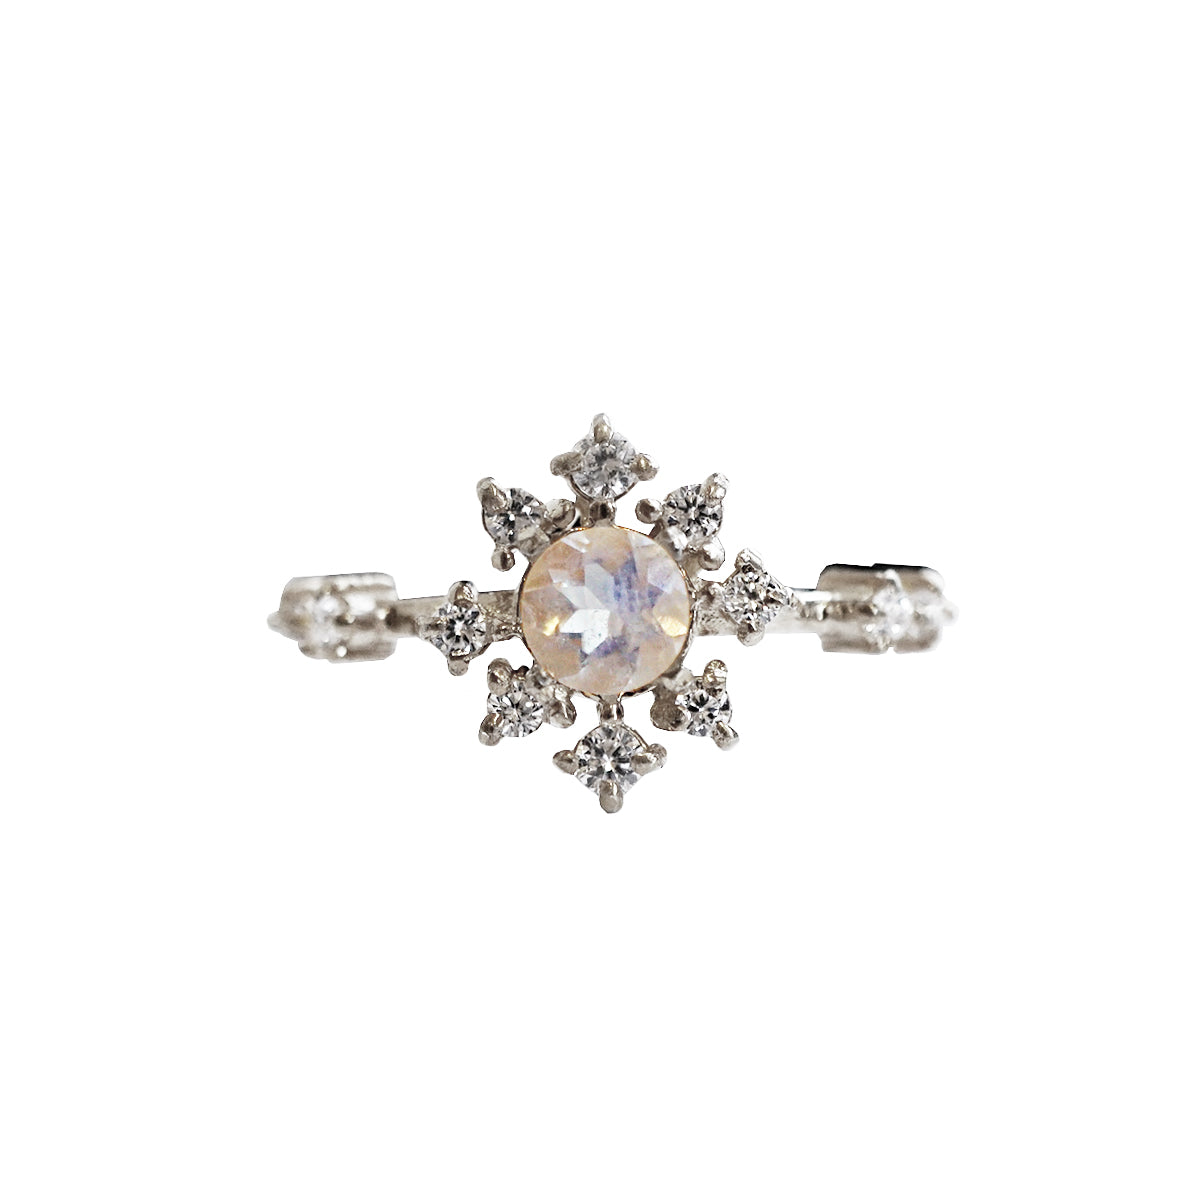 Moonstone Rose Thorn Ring - Tippy Taste Jewelry